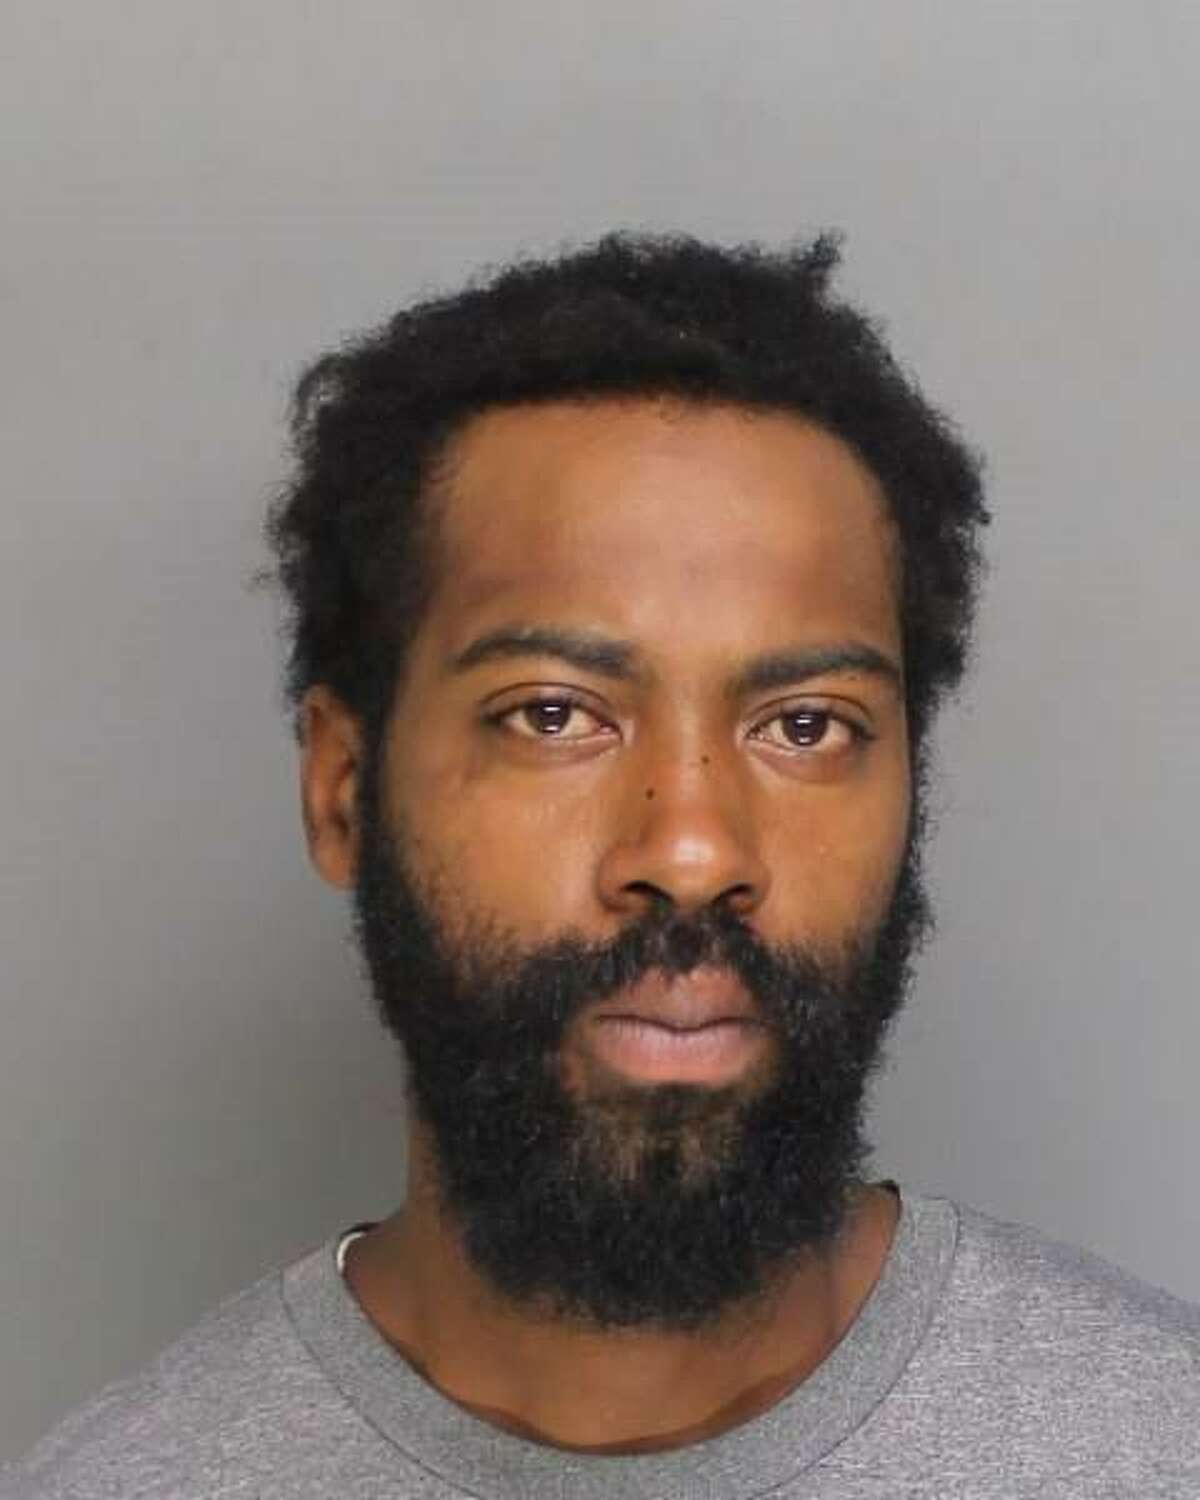 Jerome Pink, 25, of Bridgeport, Conn., was charged with fifth-degree larceny, third-degree robbery and third-degree assault. His bond was set at $10,000.